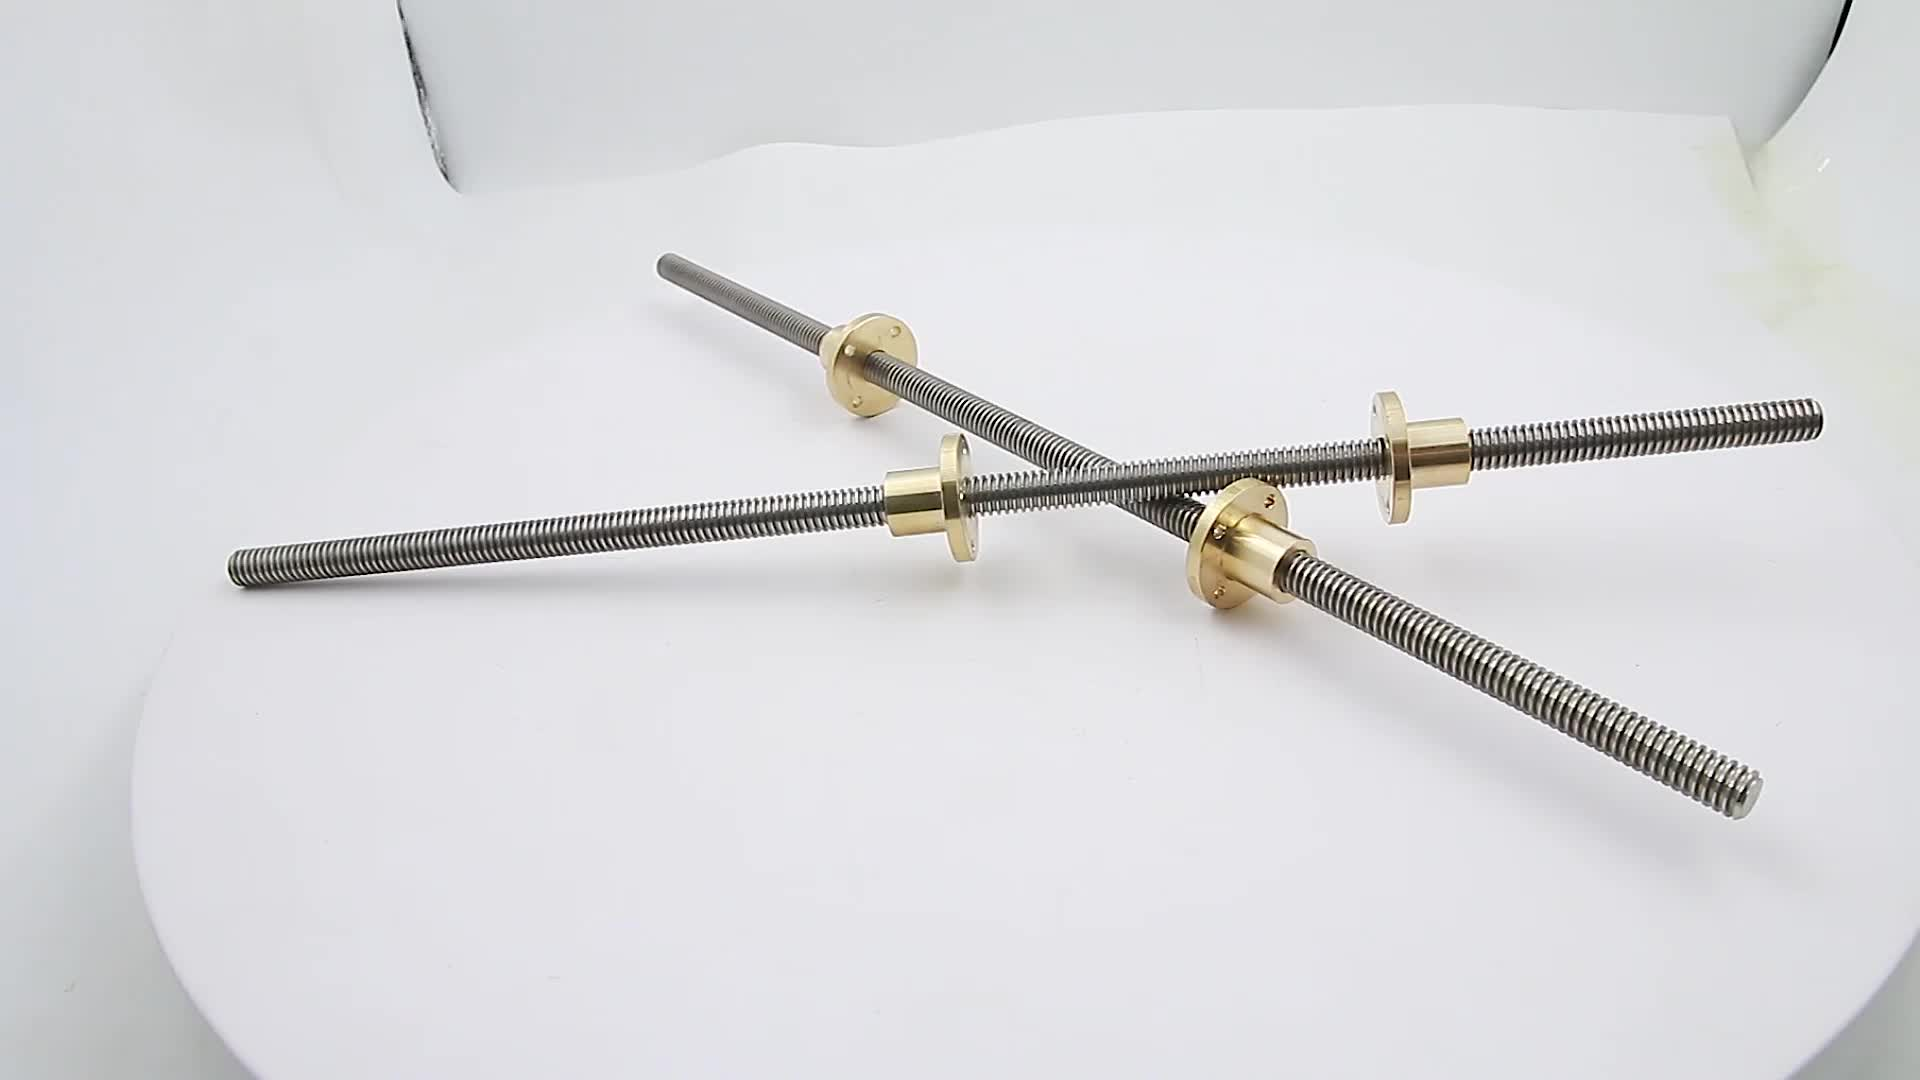 400mm length TR10x2 trapezoidal lead screw with right hand thread and left hand thread